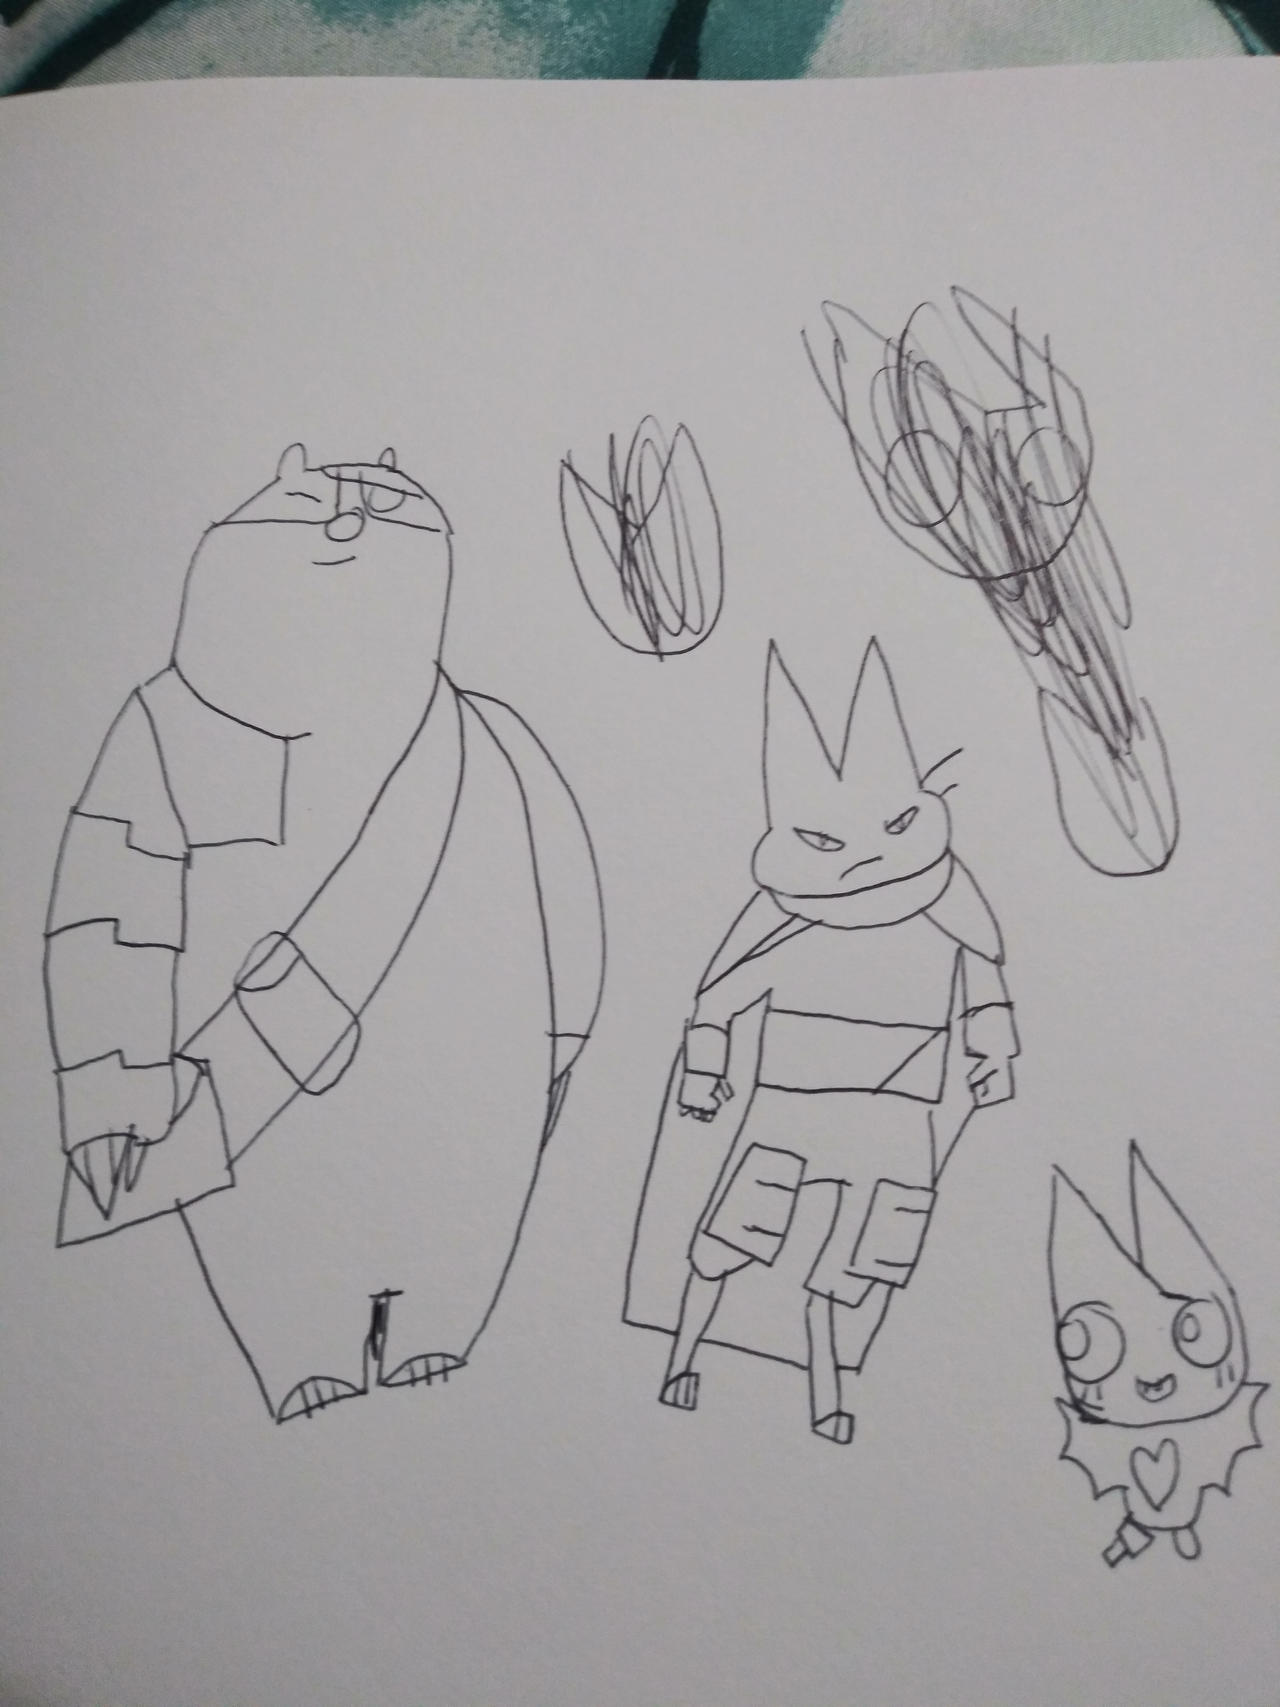 Mao Mao Badgerclops And Adorabat Drawing By Memester232 On Deviantart Mao and badgerclops as rufus and reg (lol bc looks like a boy scout). mao mao badgerclops and adorabat